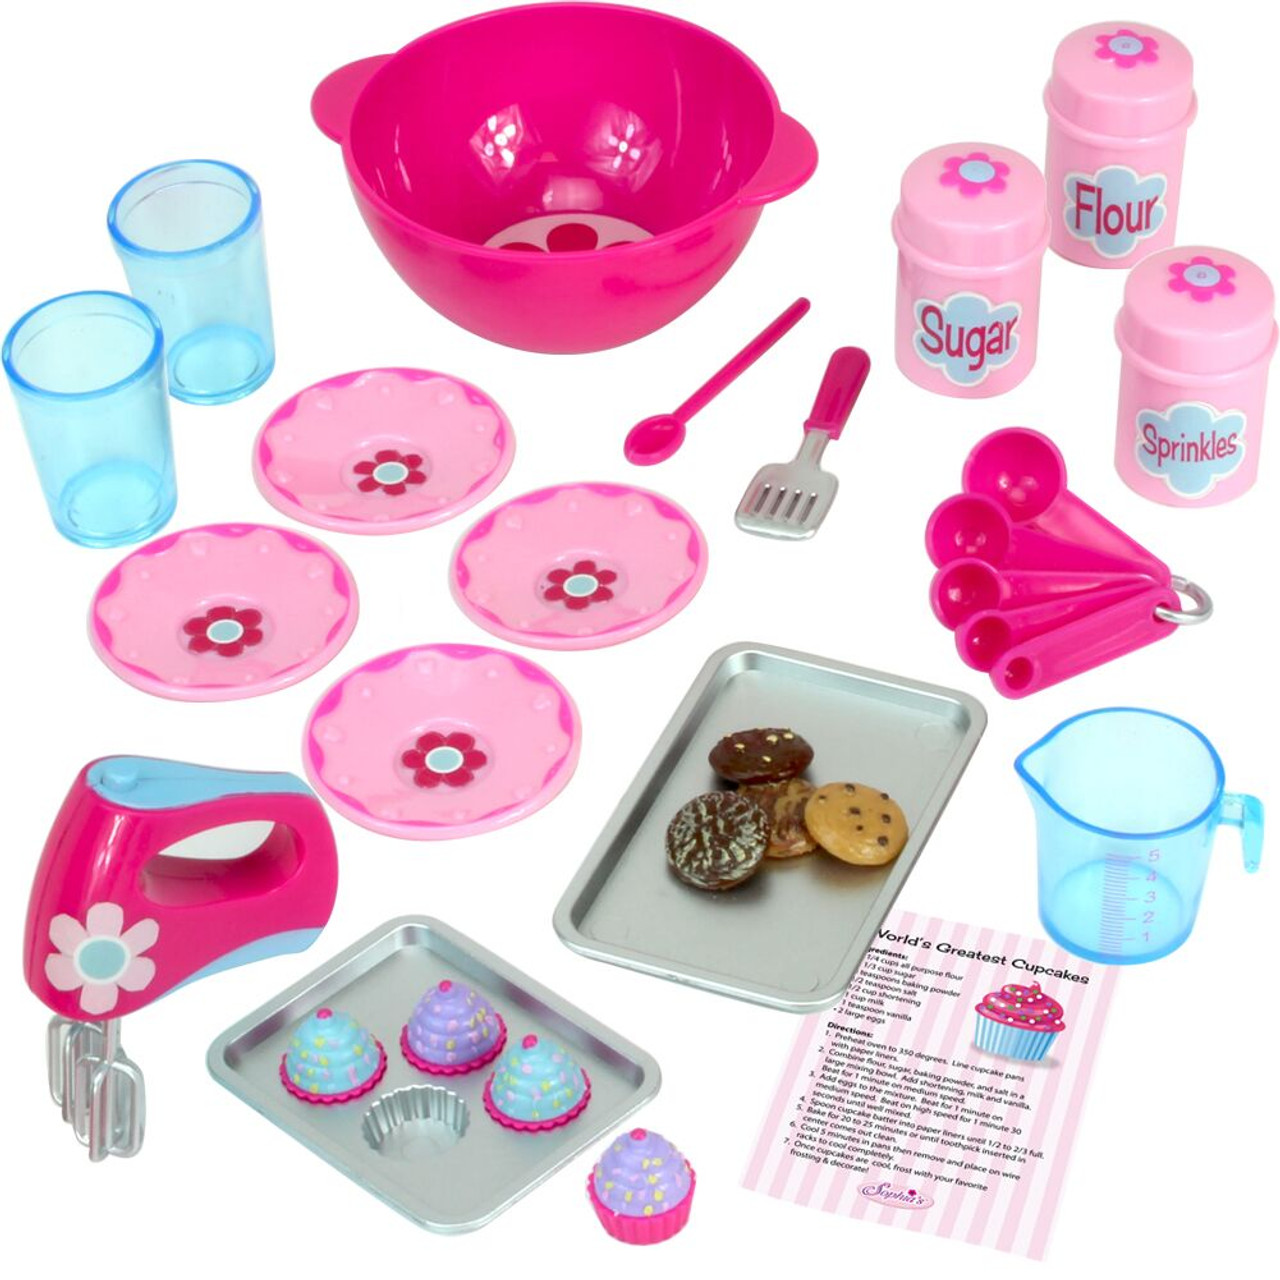 Soda Fountain Set Fits 18 inch American Girl Dolls Accessories by Sophia/'s